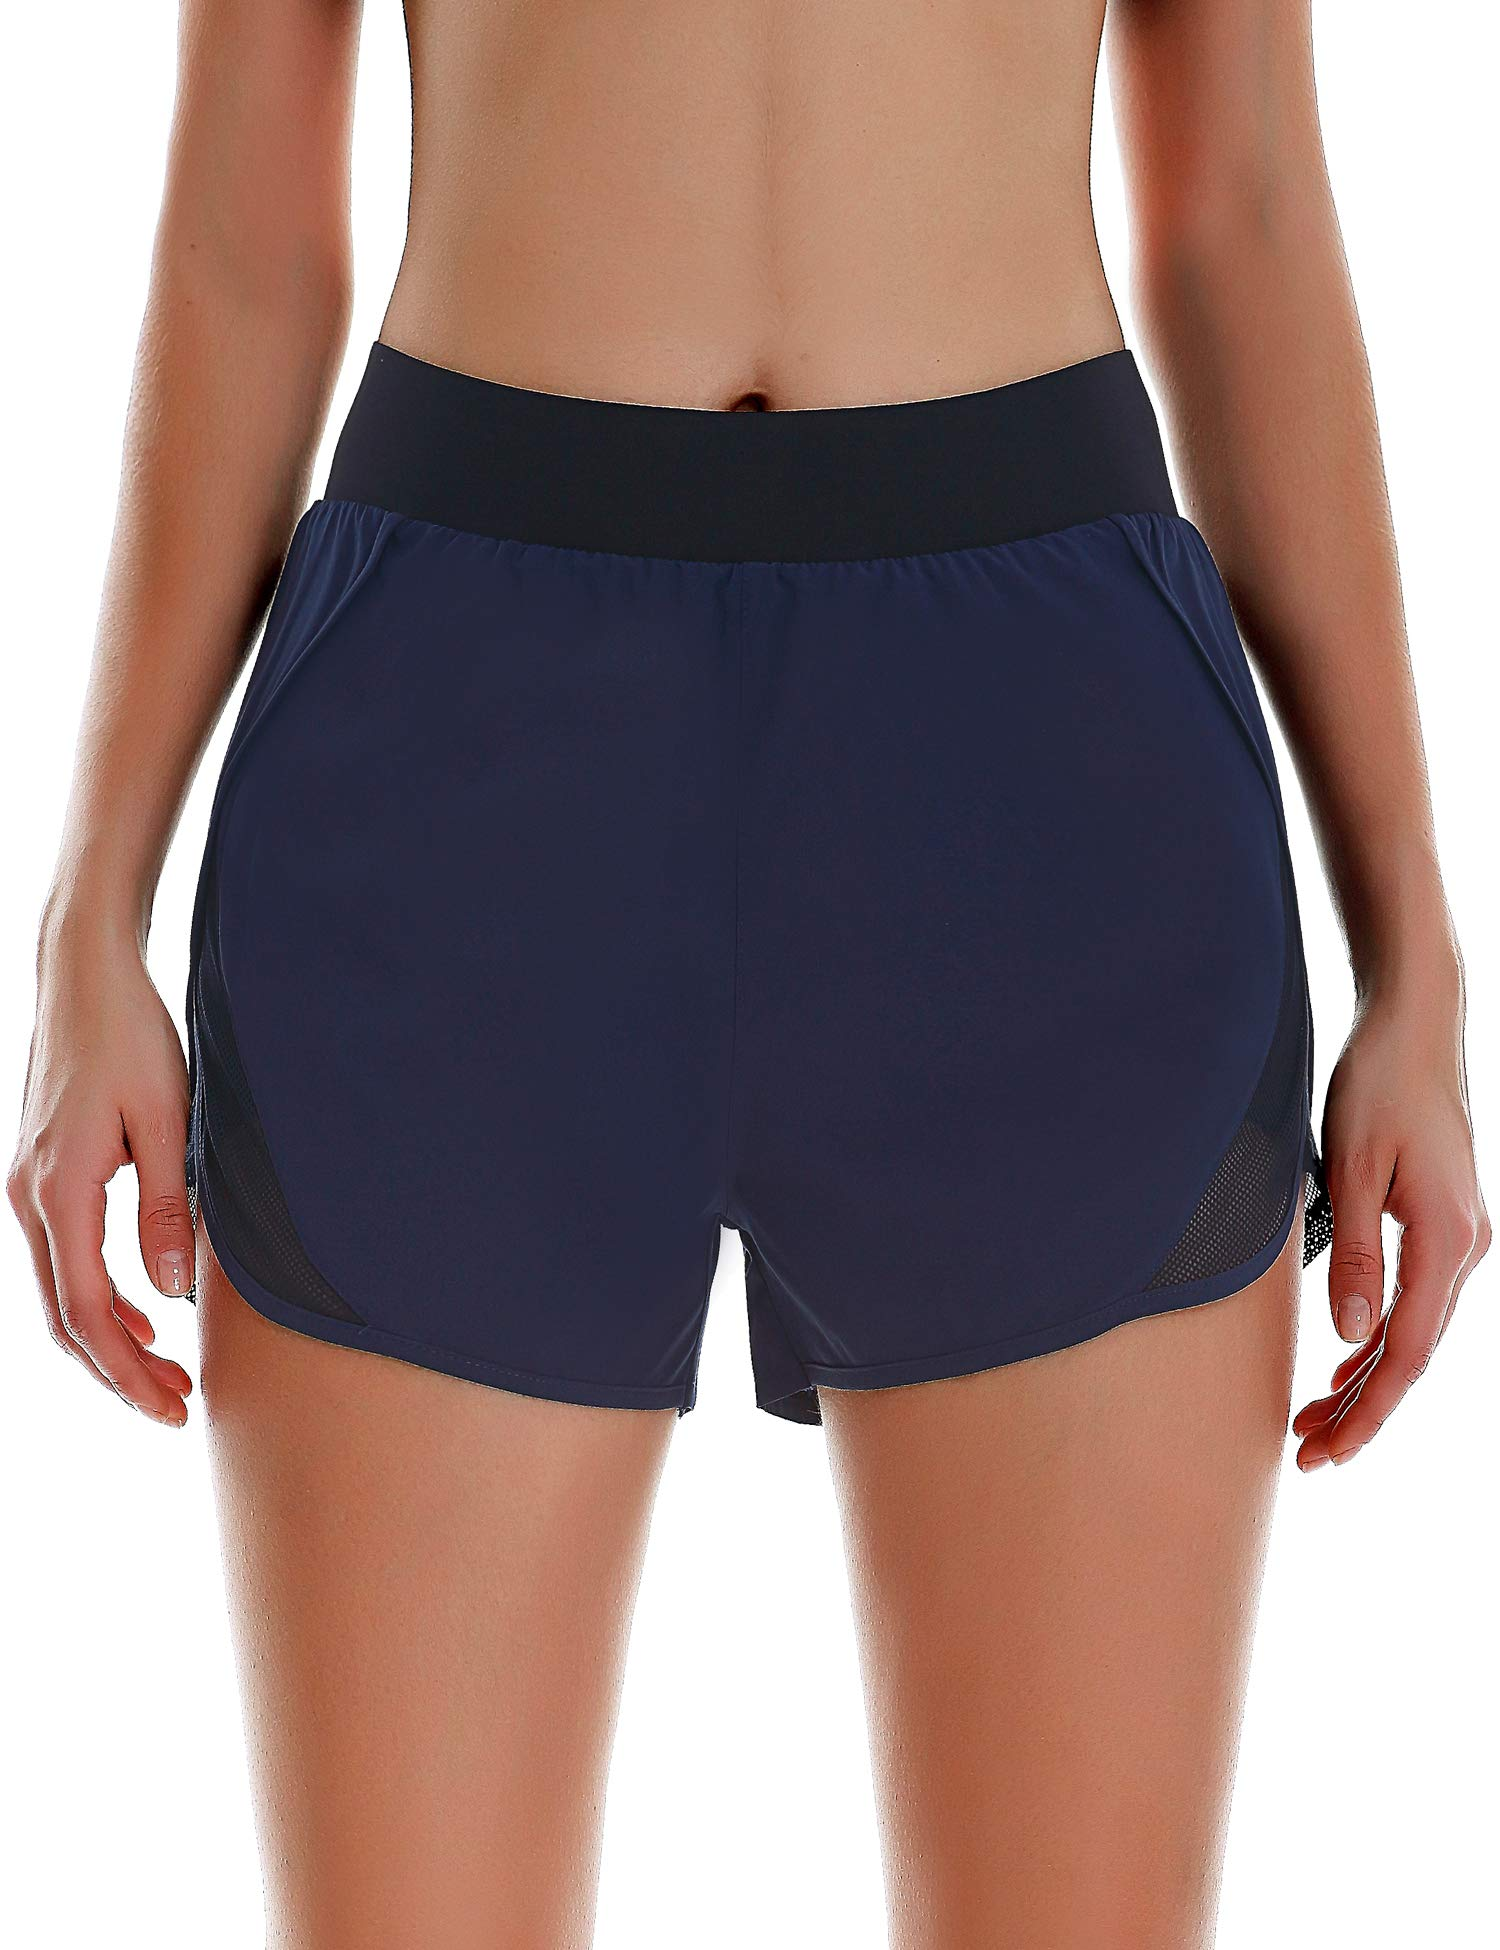 COOrun Women High Waisted Running Athletic Shorts with Mesh Liner Dry Fit Workout Sports Shorts